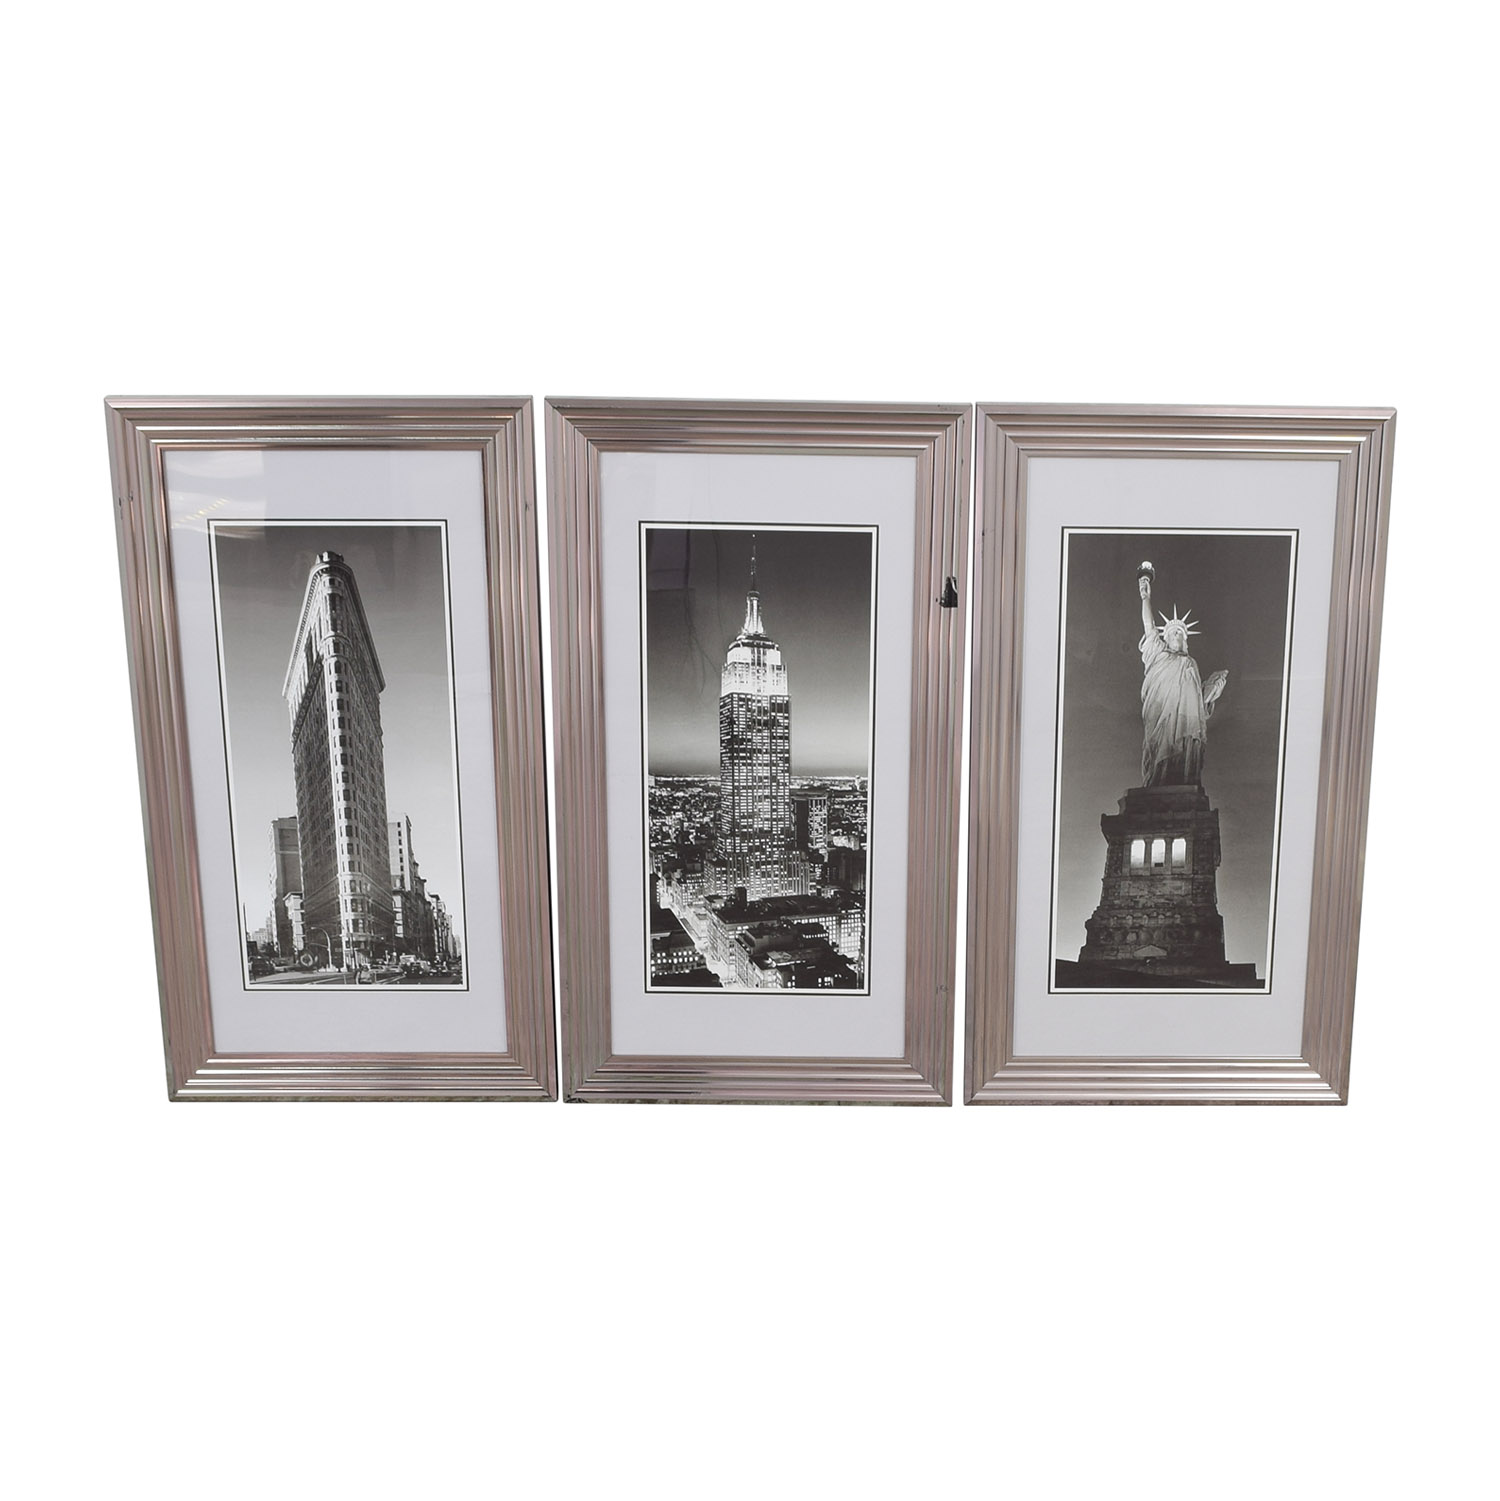 89% OFF - Modani Modani Framed NYC Landmark Prints / Decor